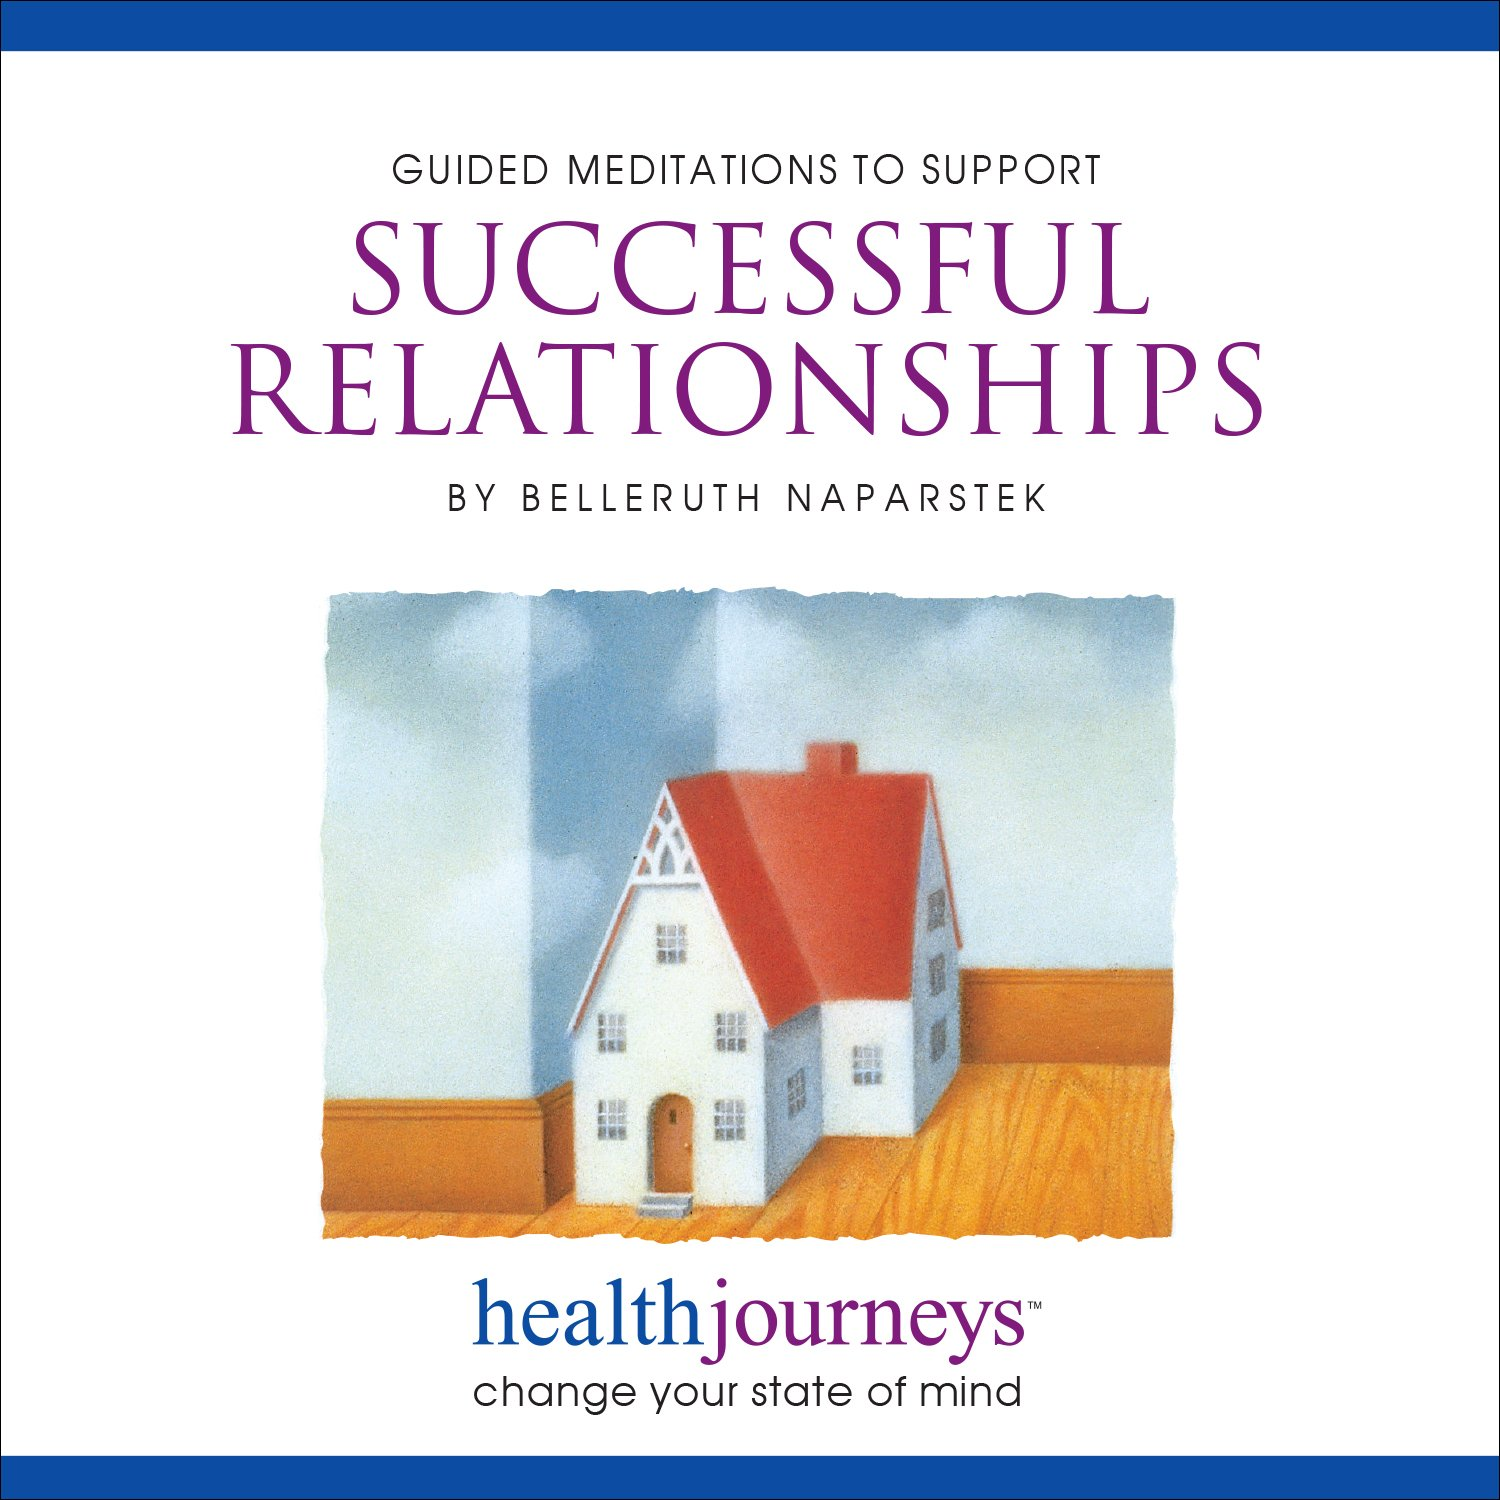 Meditations to Support Successful Relationships- Four Guided Imagery Exercises to Restore, Renew or Redirect Positive Feelings by Brand: Health Journeys